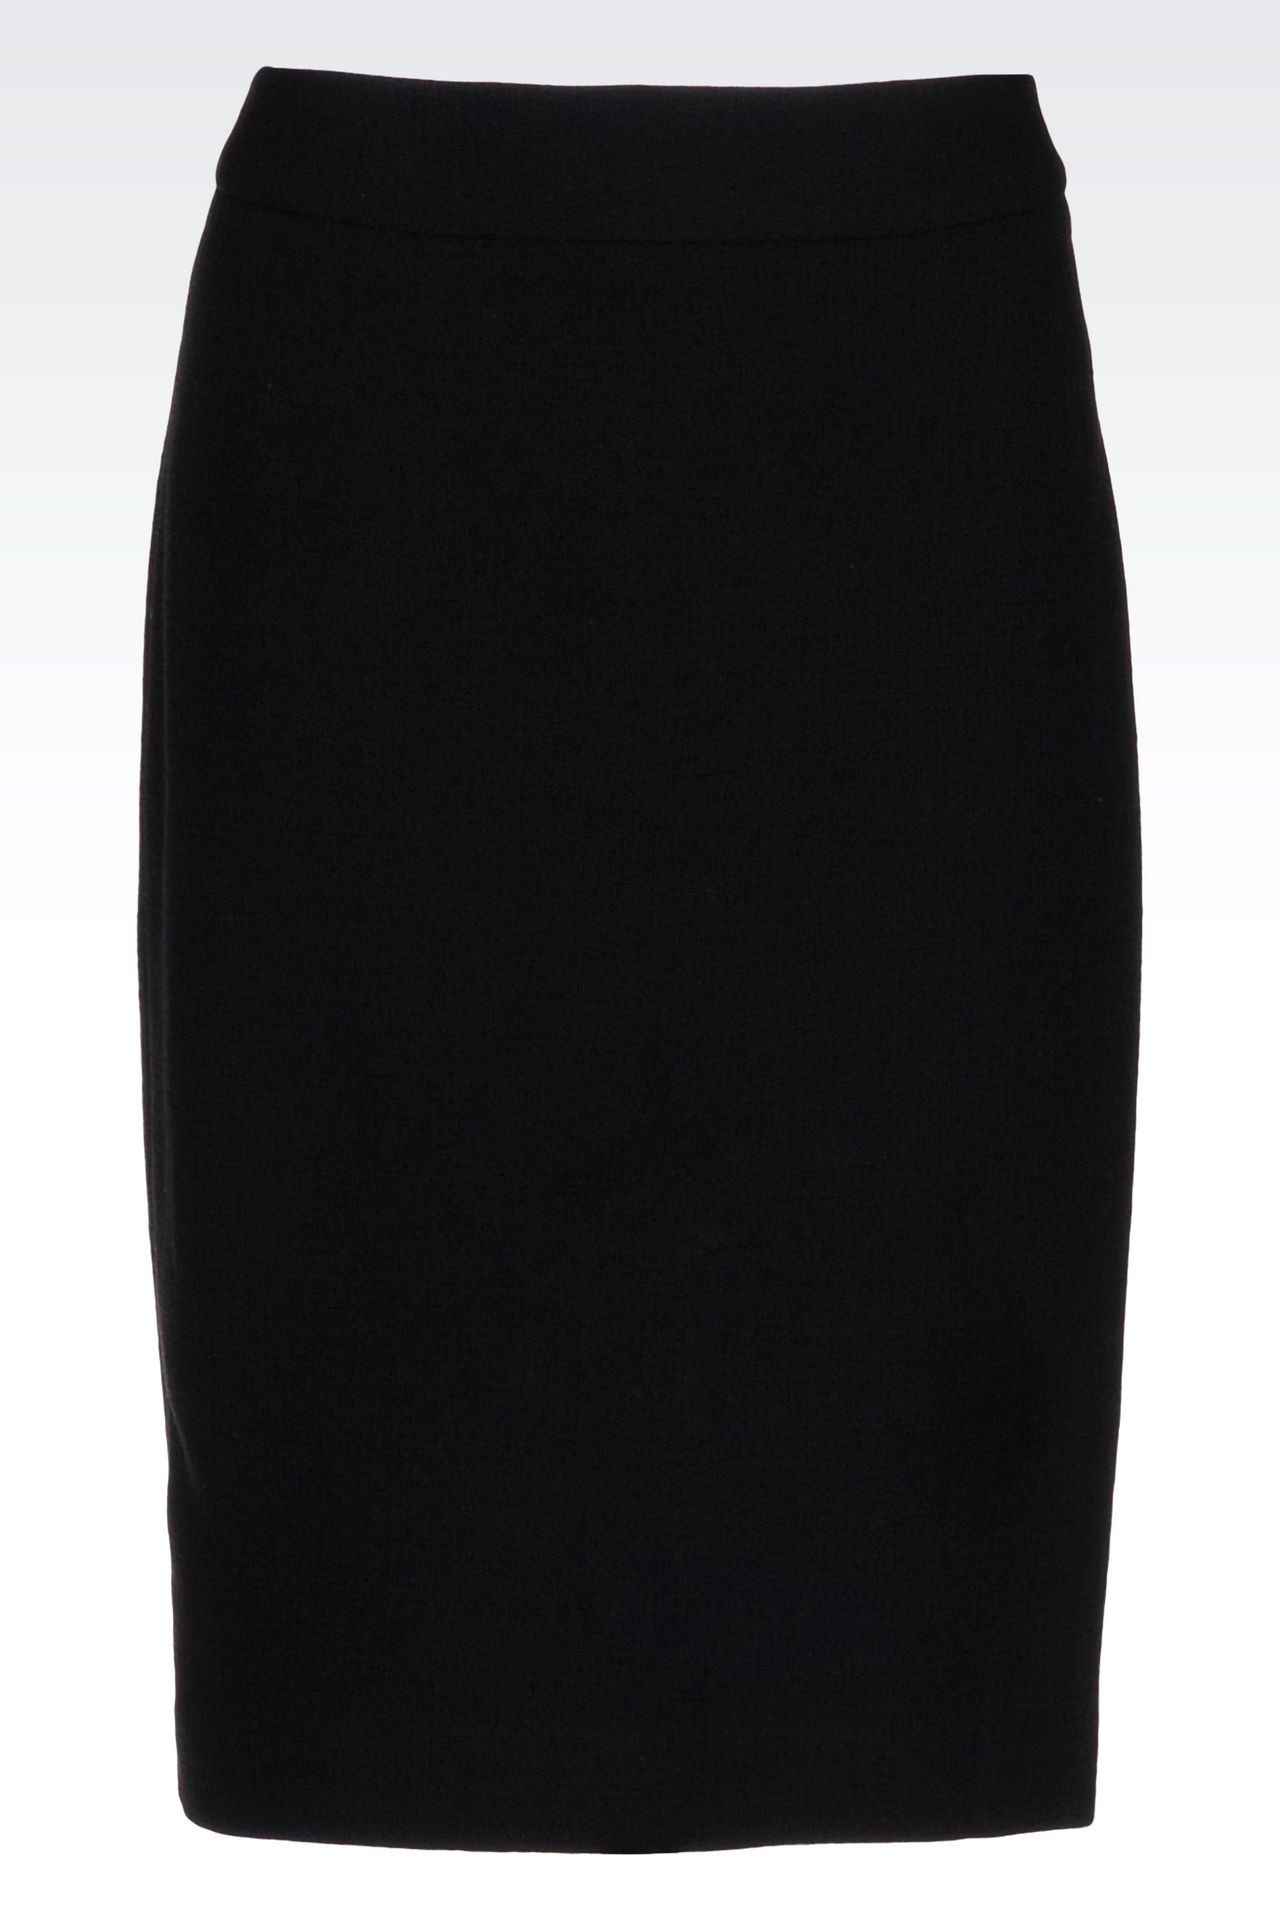 PENCIL SKIRT IN WOOL CRÊPE: Knee length skirts Women by Armani - 0